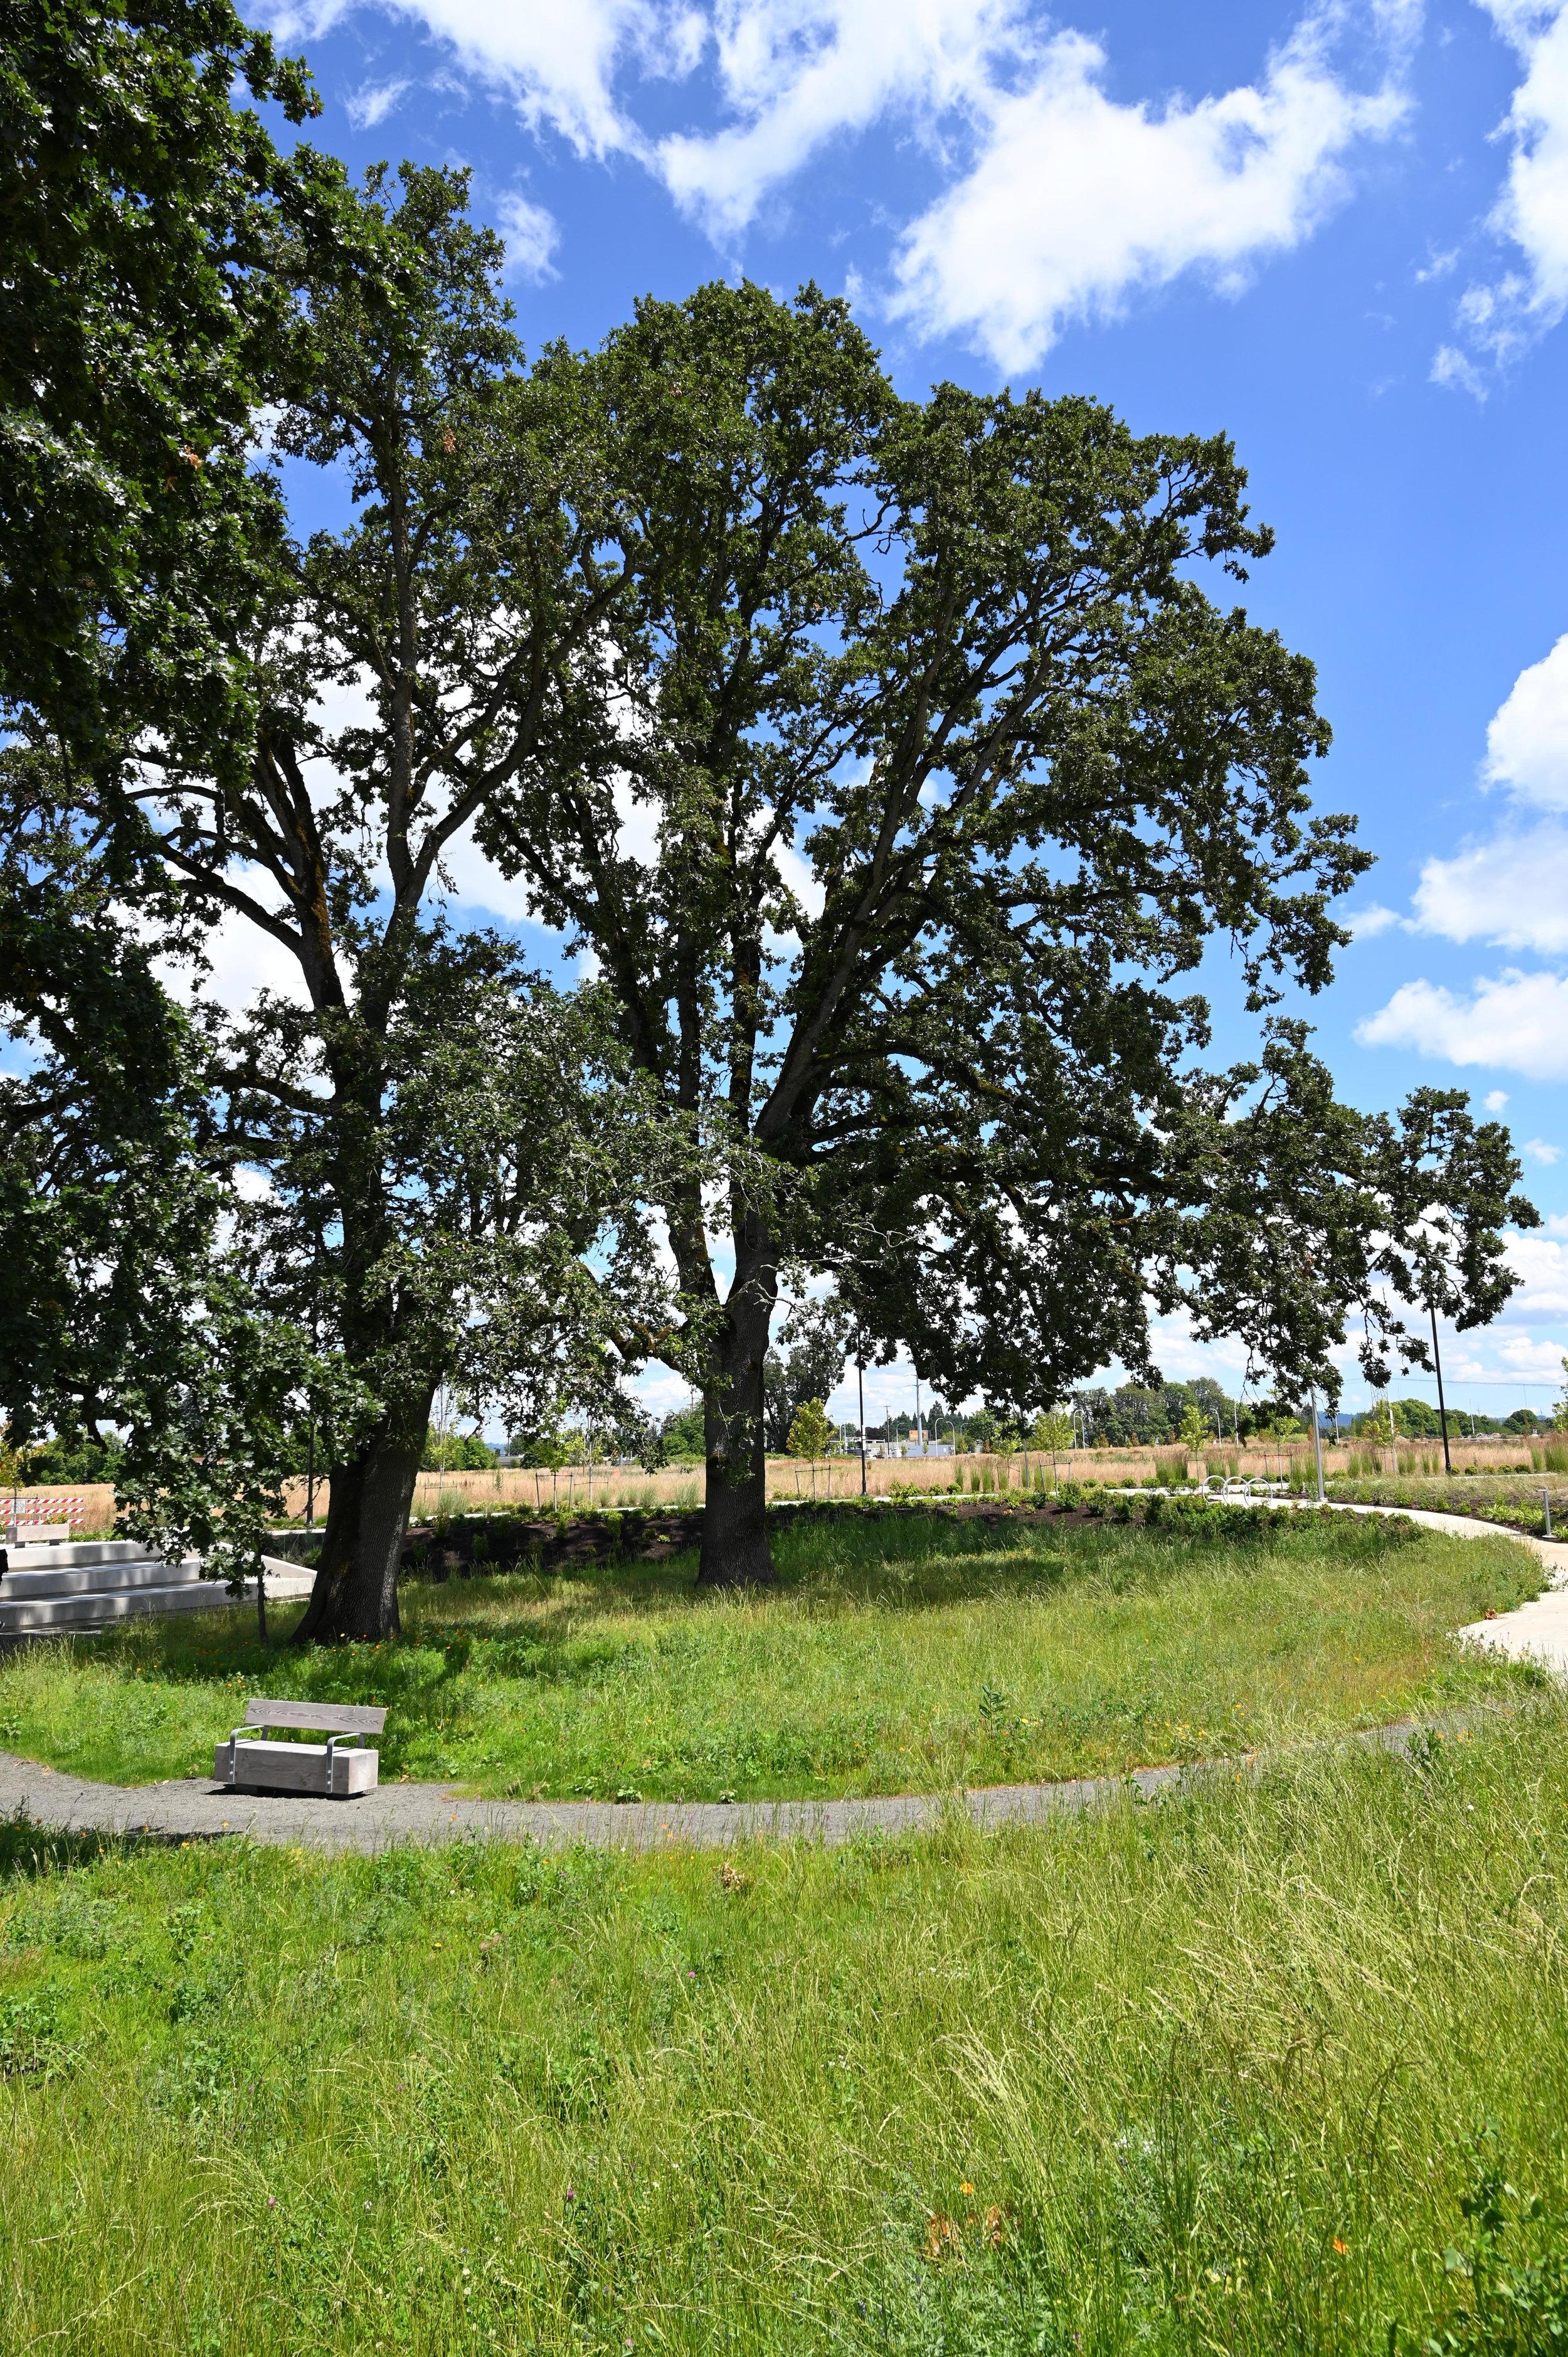 mature oak trees in meadow on sunny day